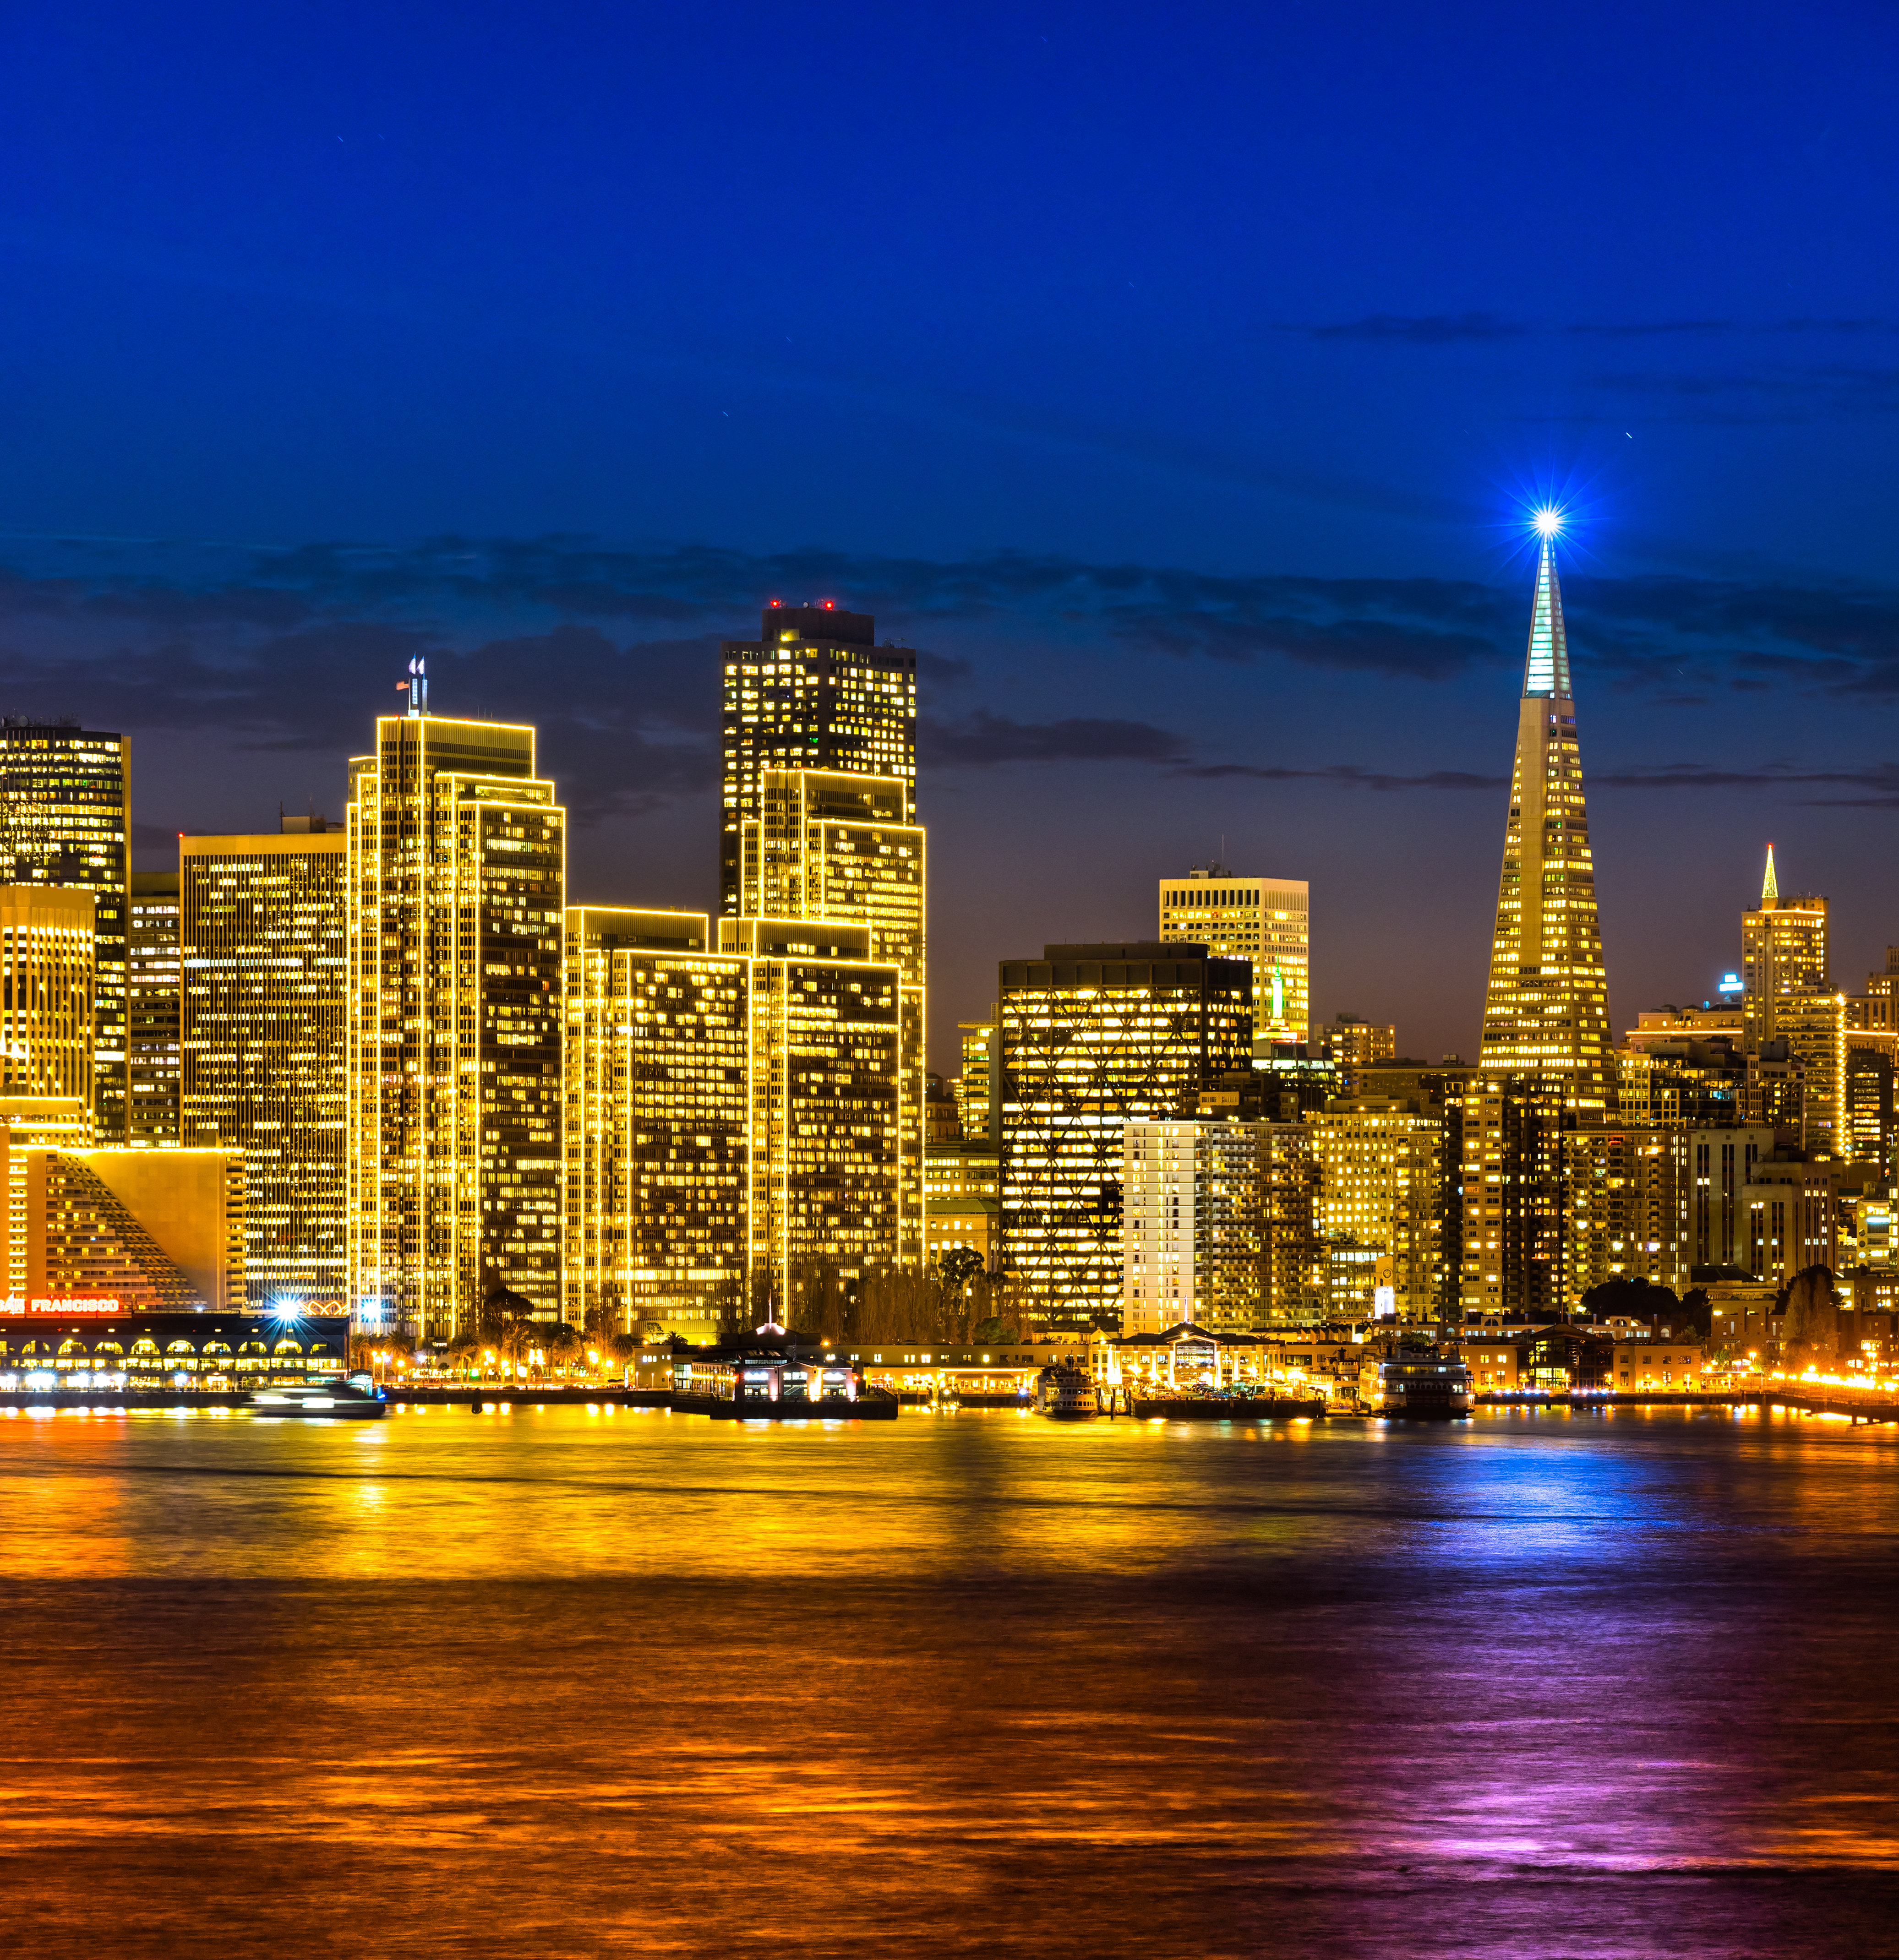 Tall buildings glowing with window lights in San Francisco, including a tall building with a pointed top and an almost blinding white light at the tip.